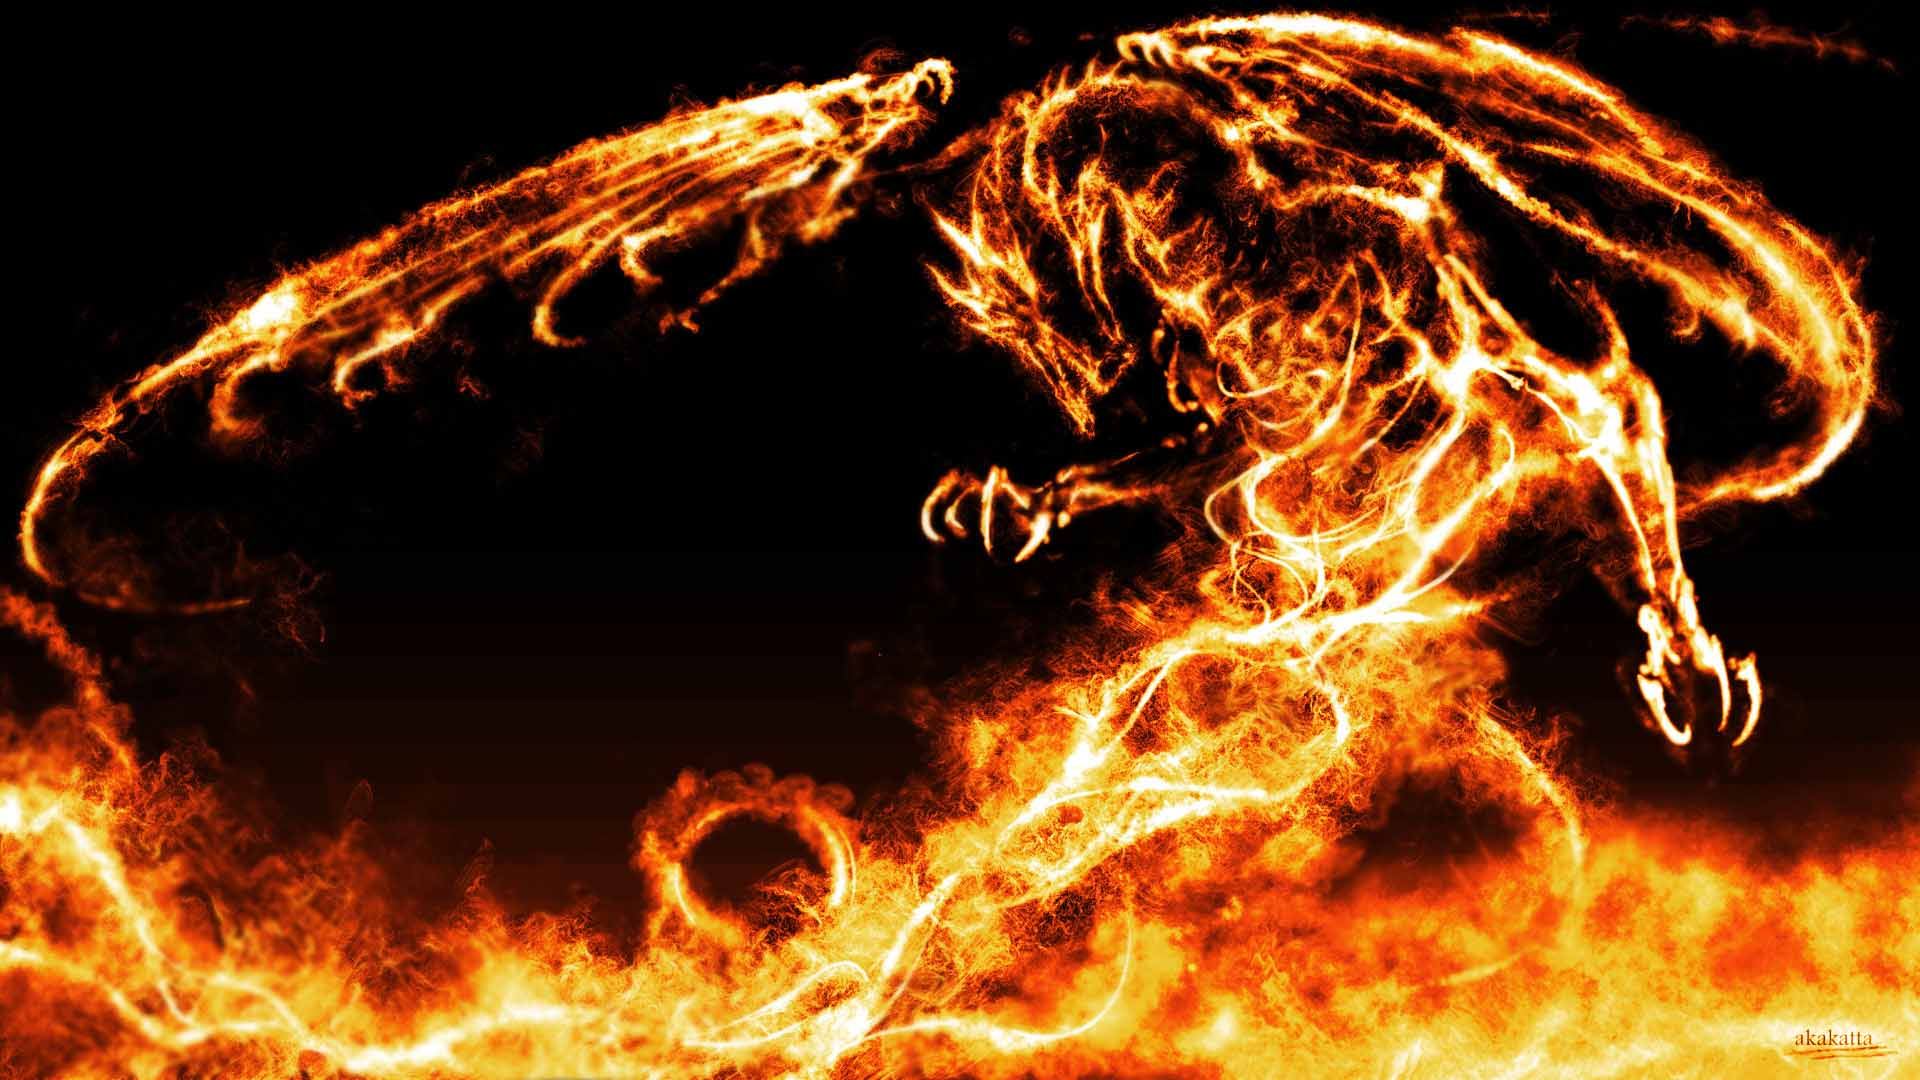 Dragon Fire Awesome Wallpapers 9931   Amazing Wallpaperz 1920x1080